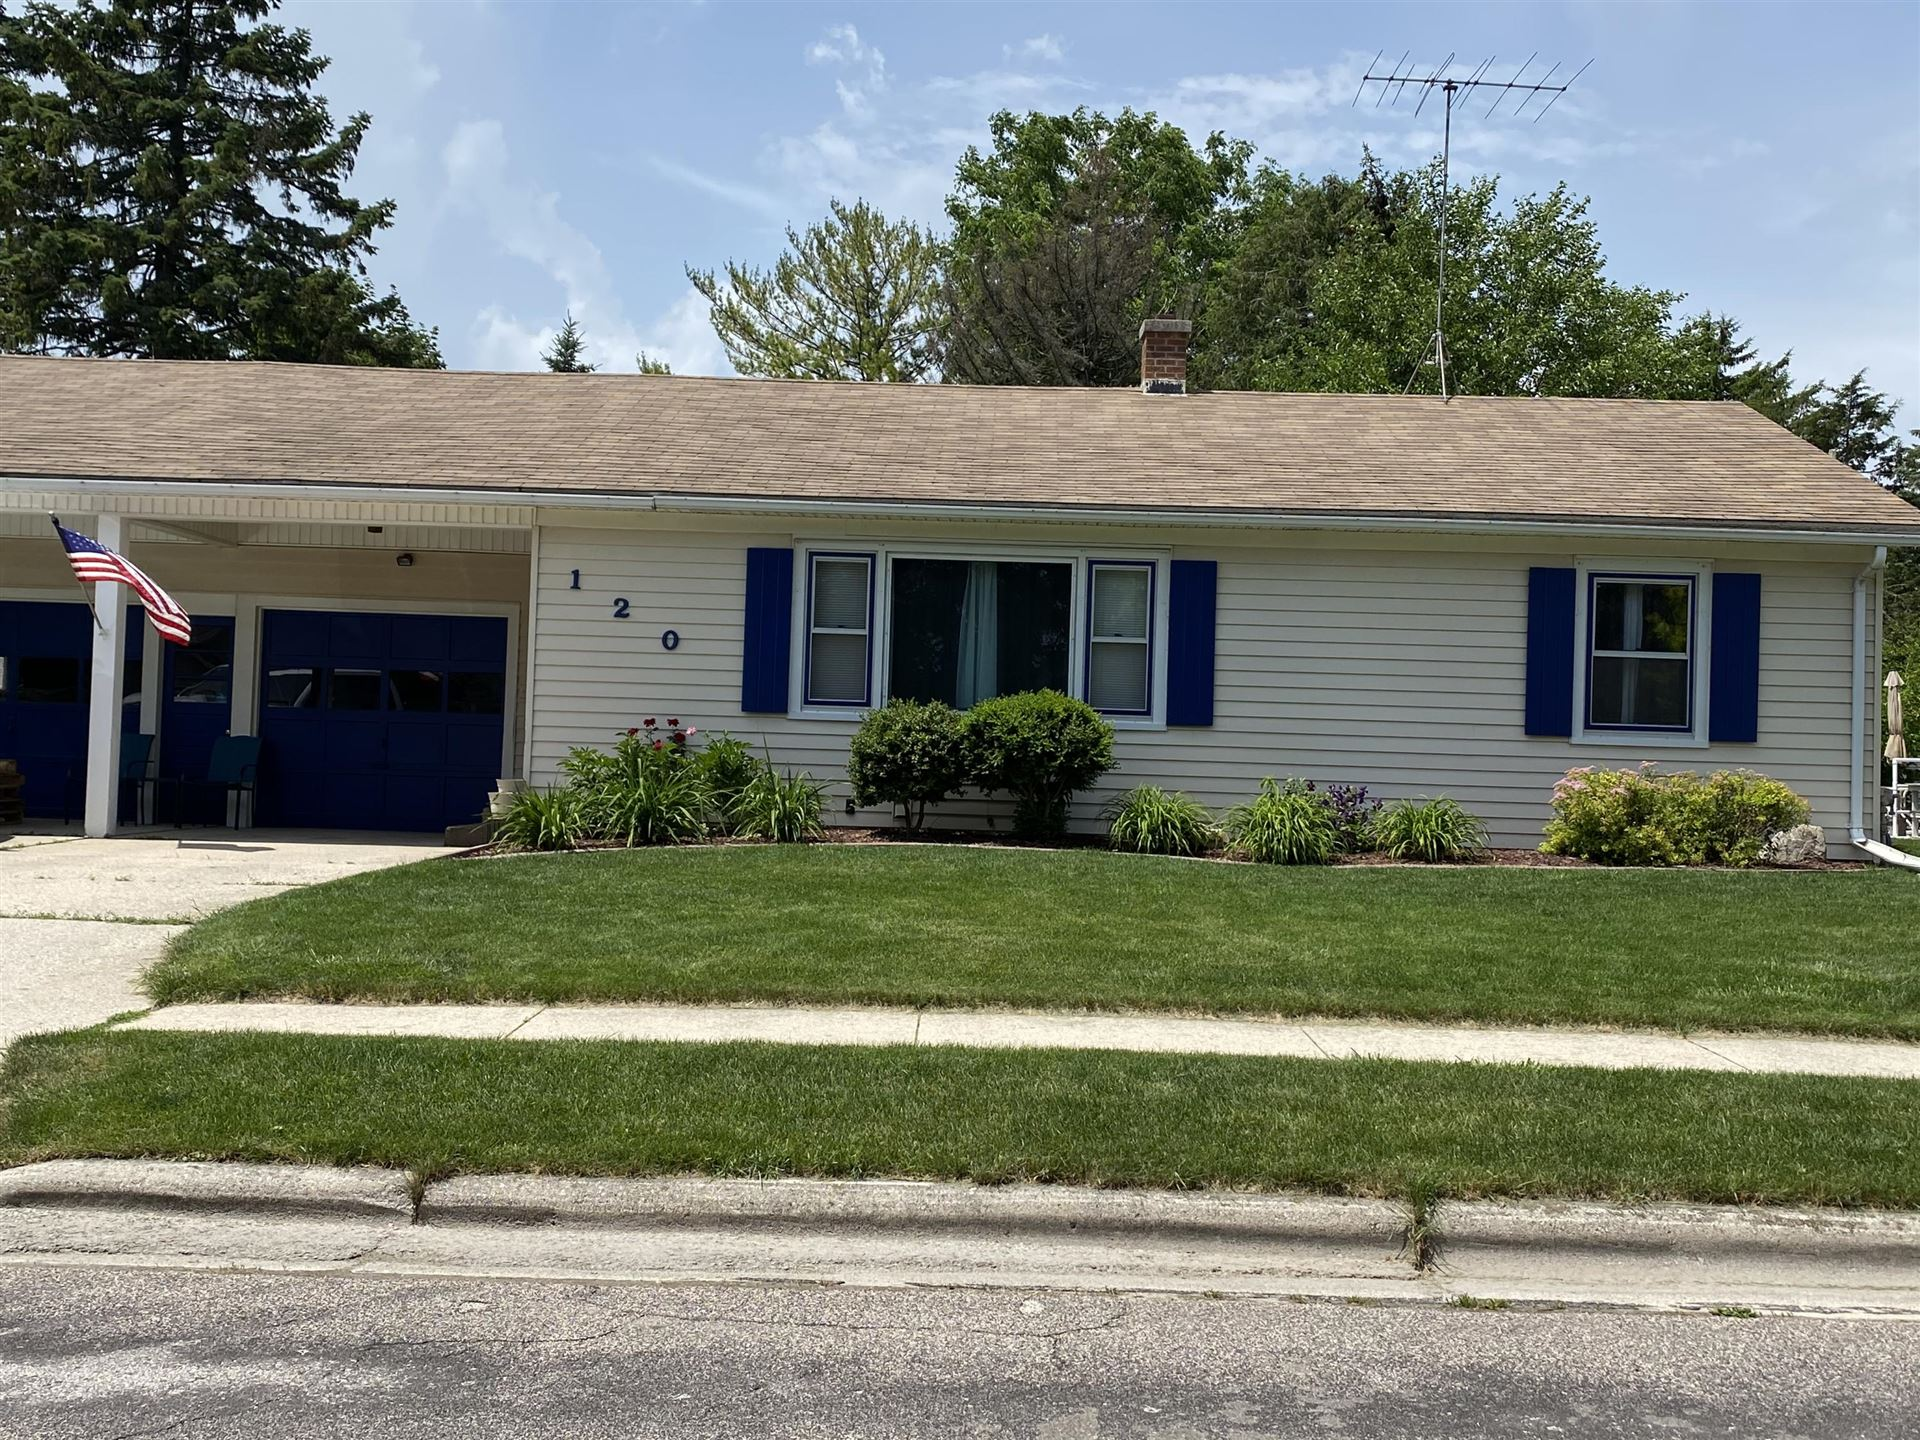 120 N Bruns Ave, Plymouth, WI 53073 - #: 1696339